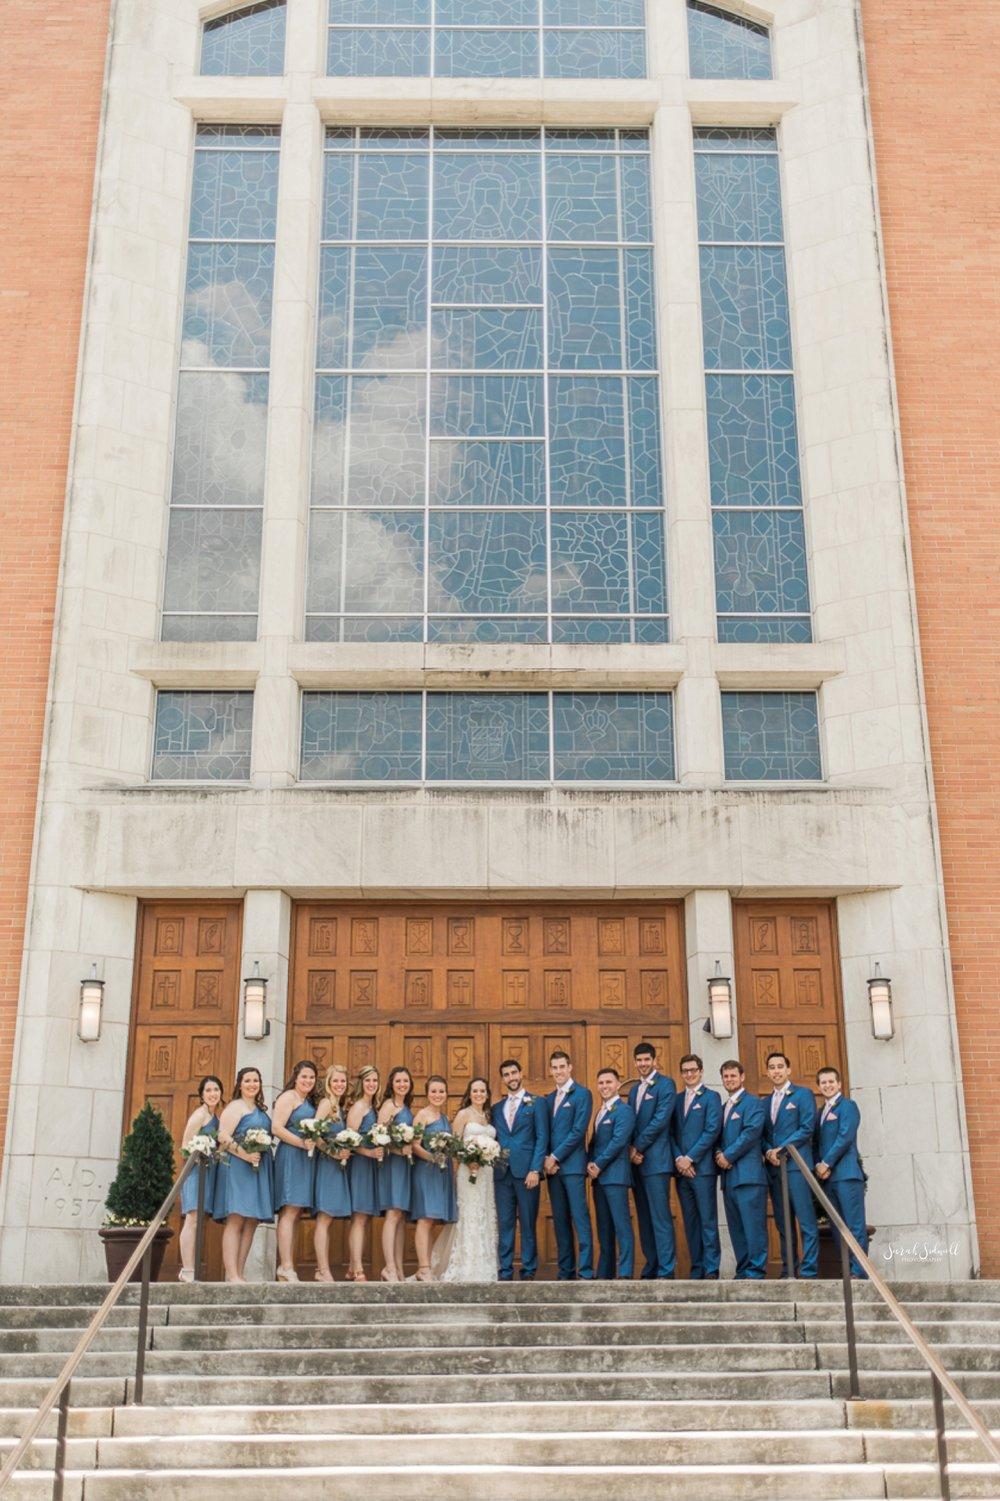 A wedding party stands in front of a tall building with tall windows.